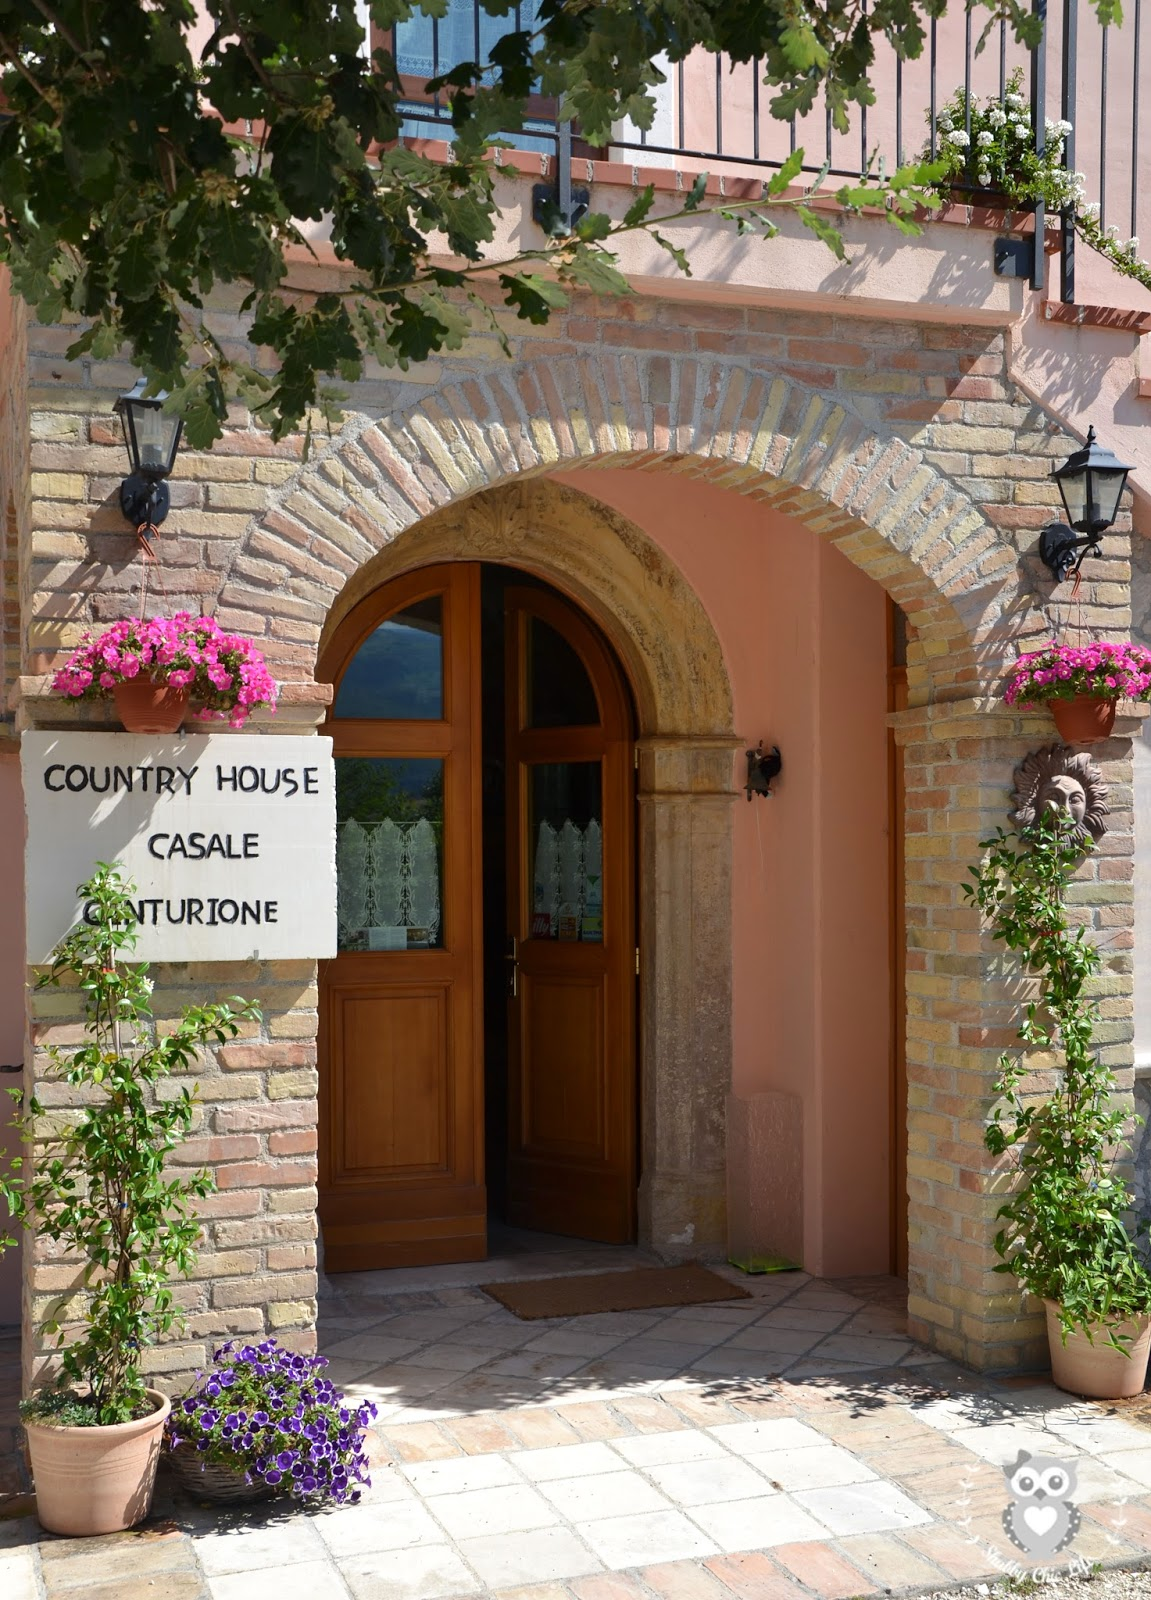 Country House Casale Centurione, Manoppello